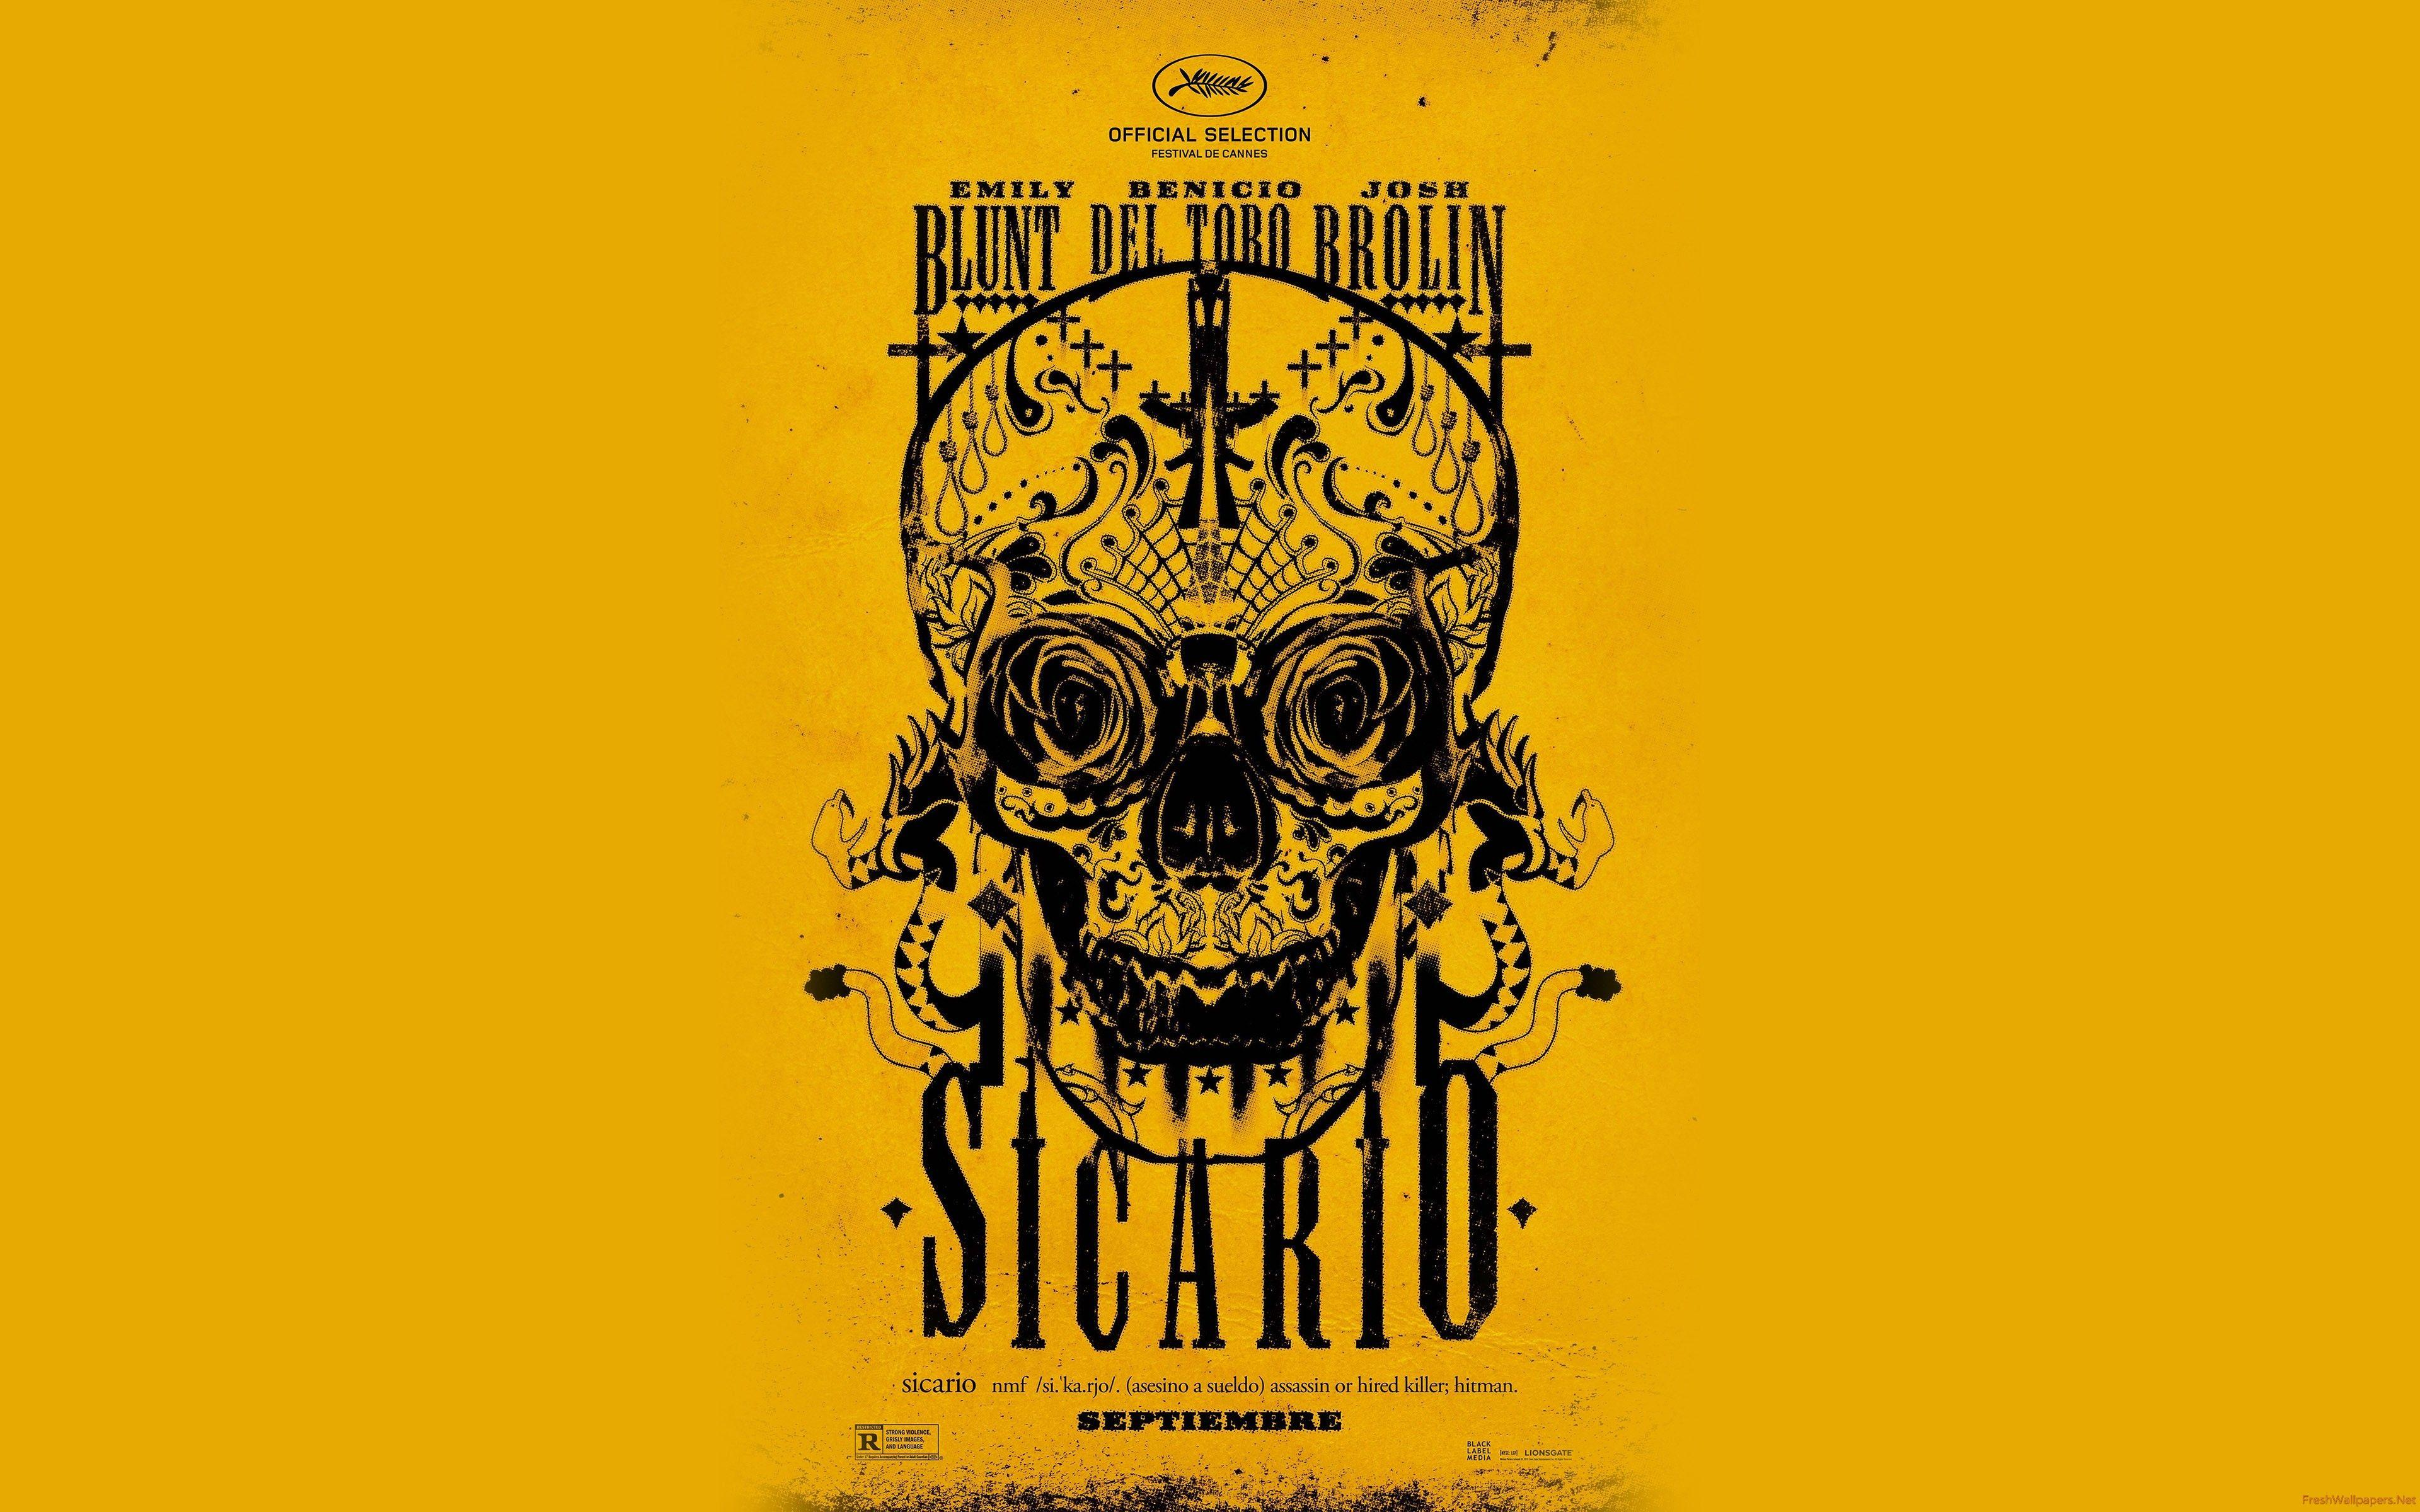 Sicario 2015 Official Movie wallpapers